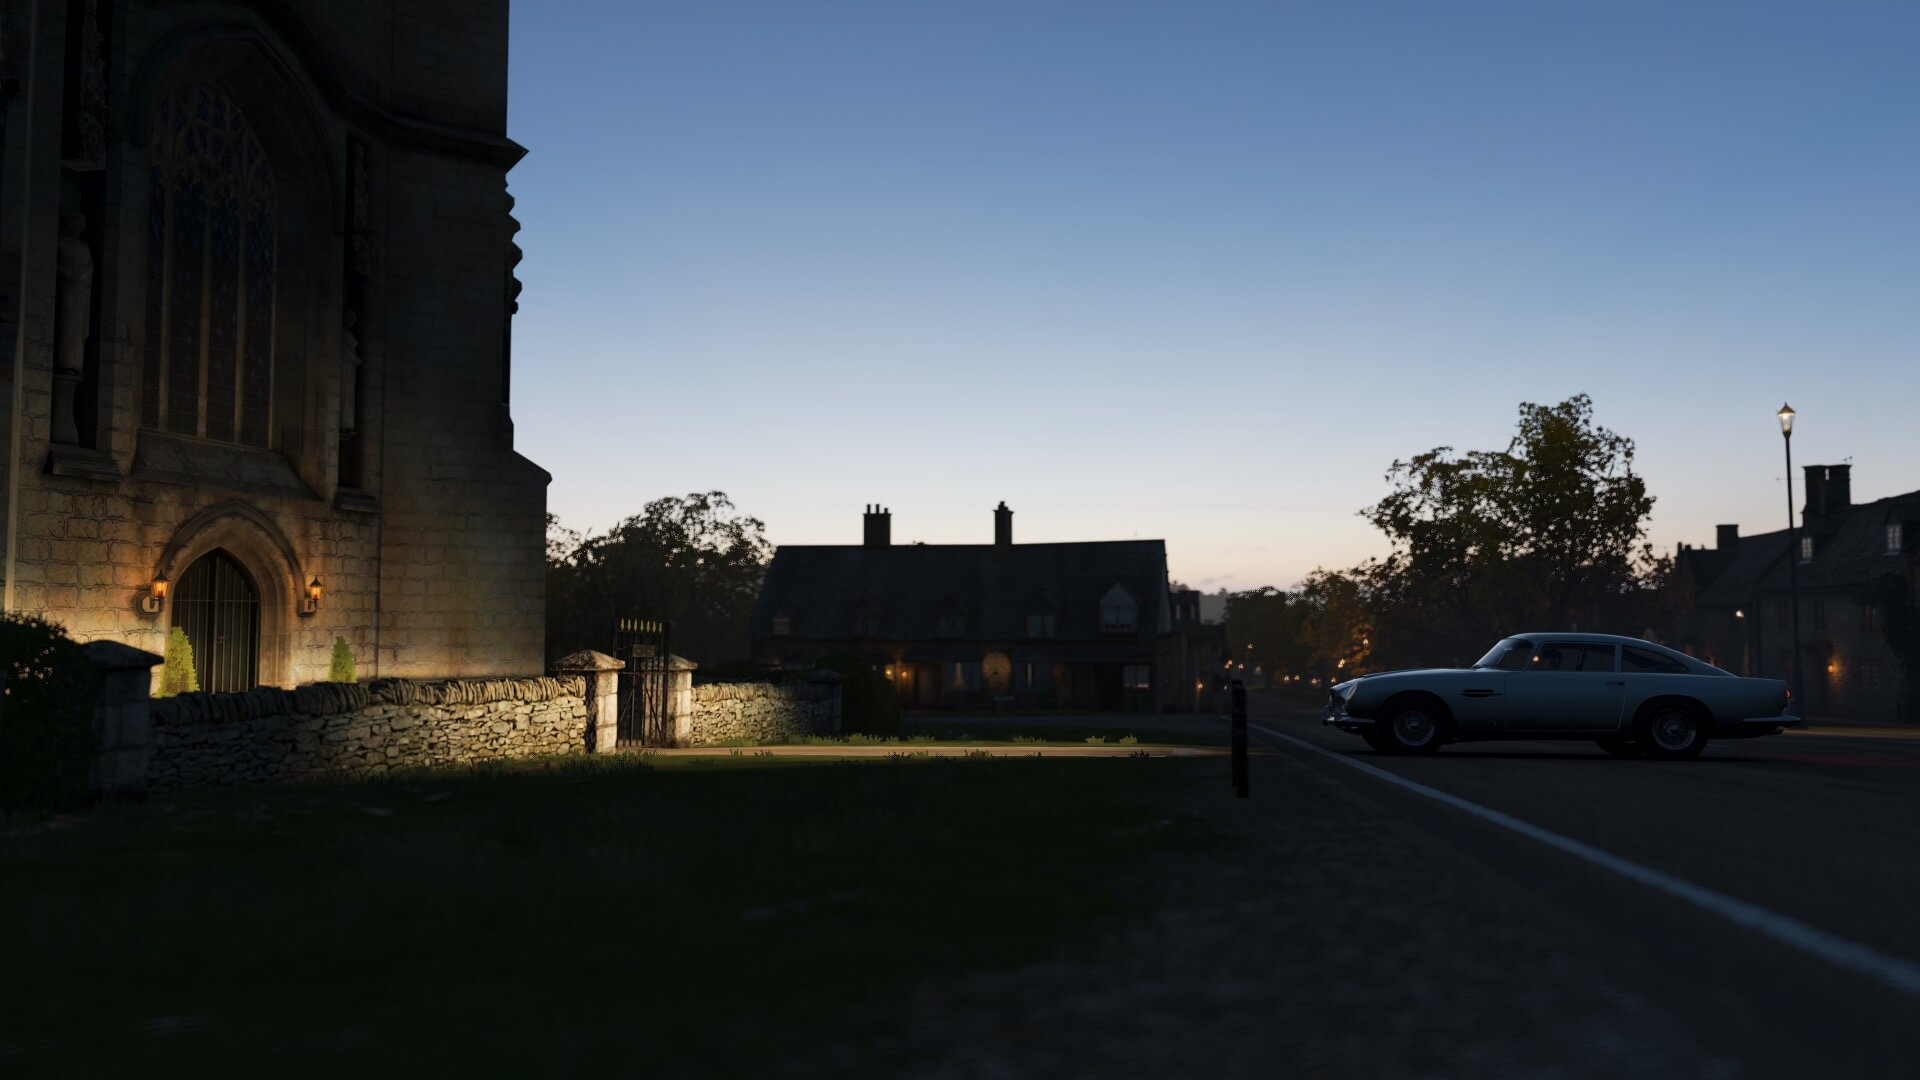 Insane Forza Horizon 4 Photo Gallery That Will Make Xbox